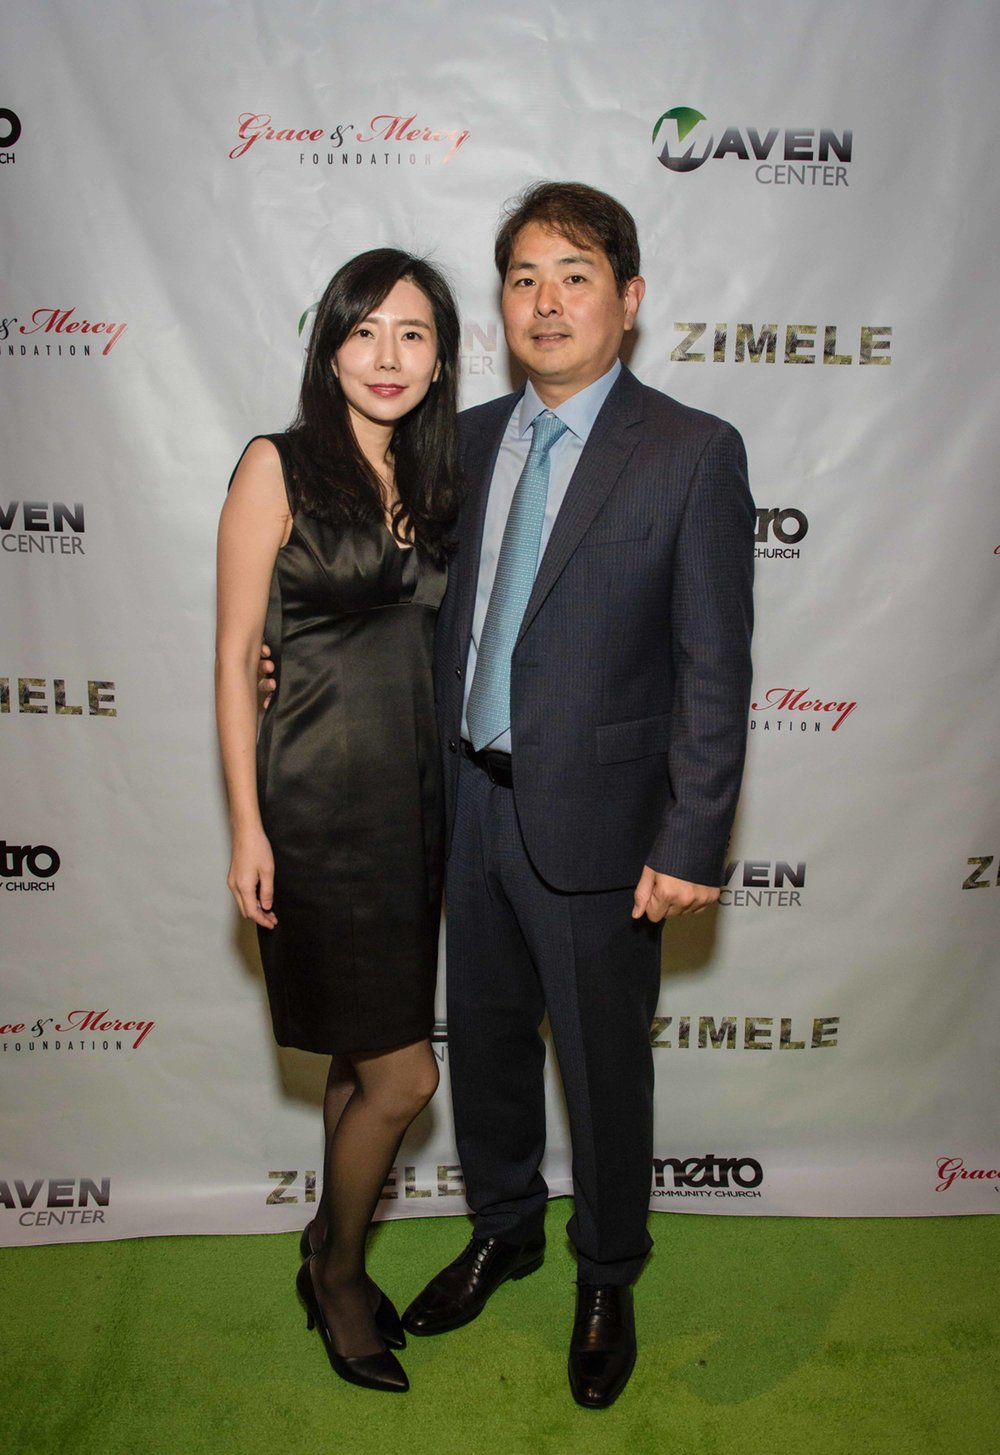 2017-10-21 Zimele USA 6th Annual Gala - Maritime Parc - Jersey City NJ_0025.jpg